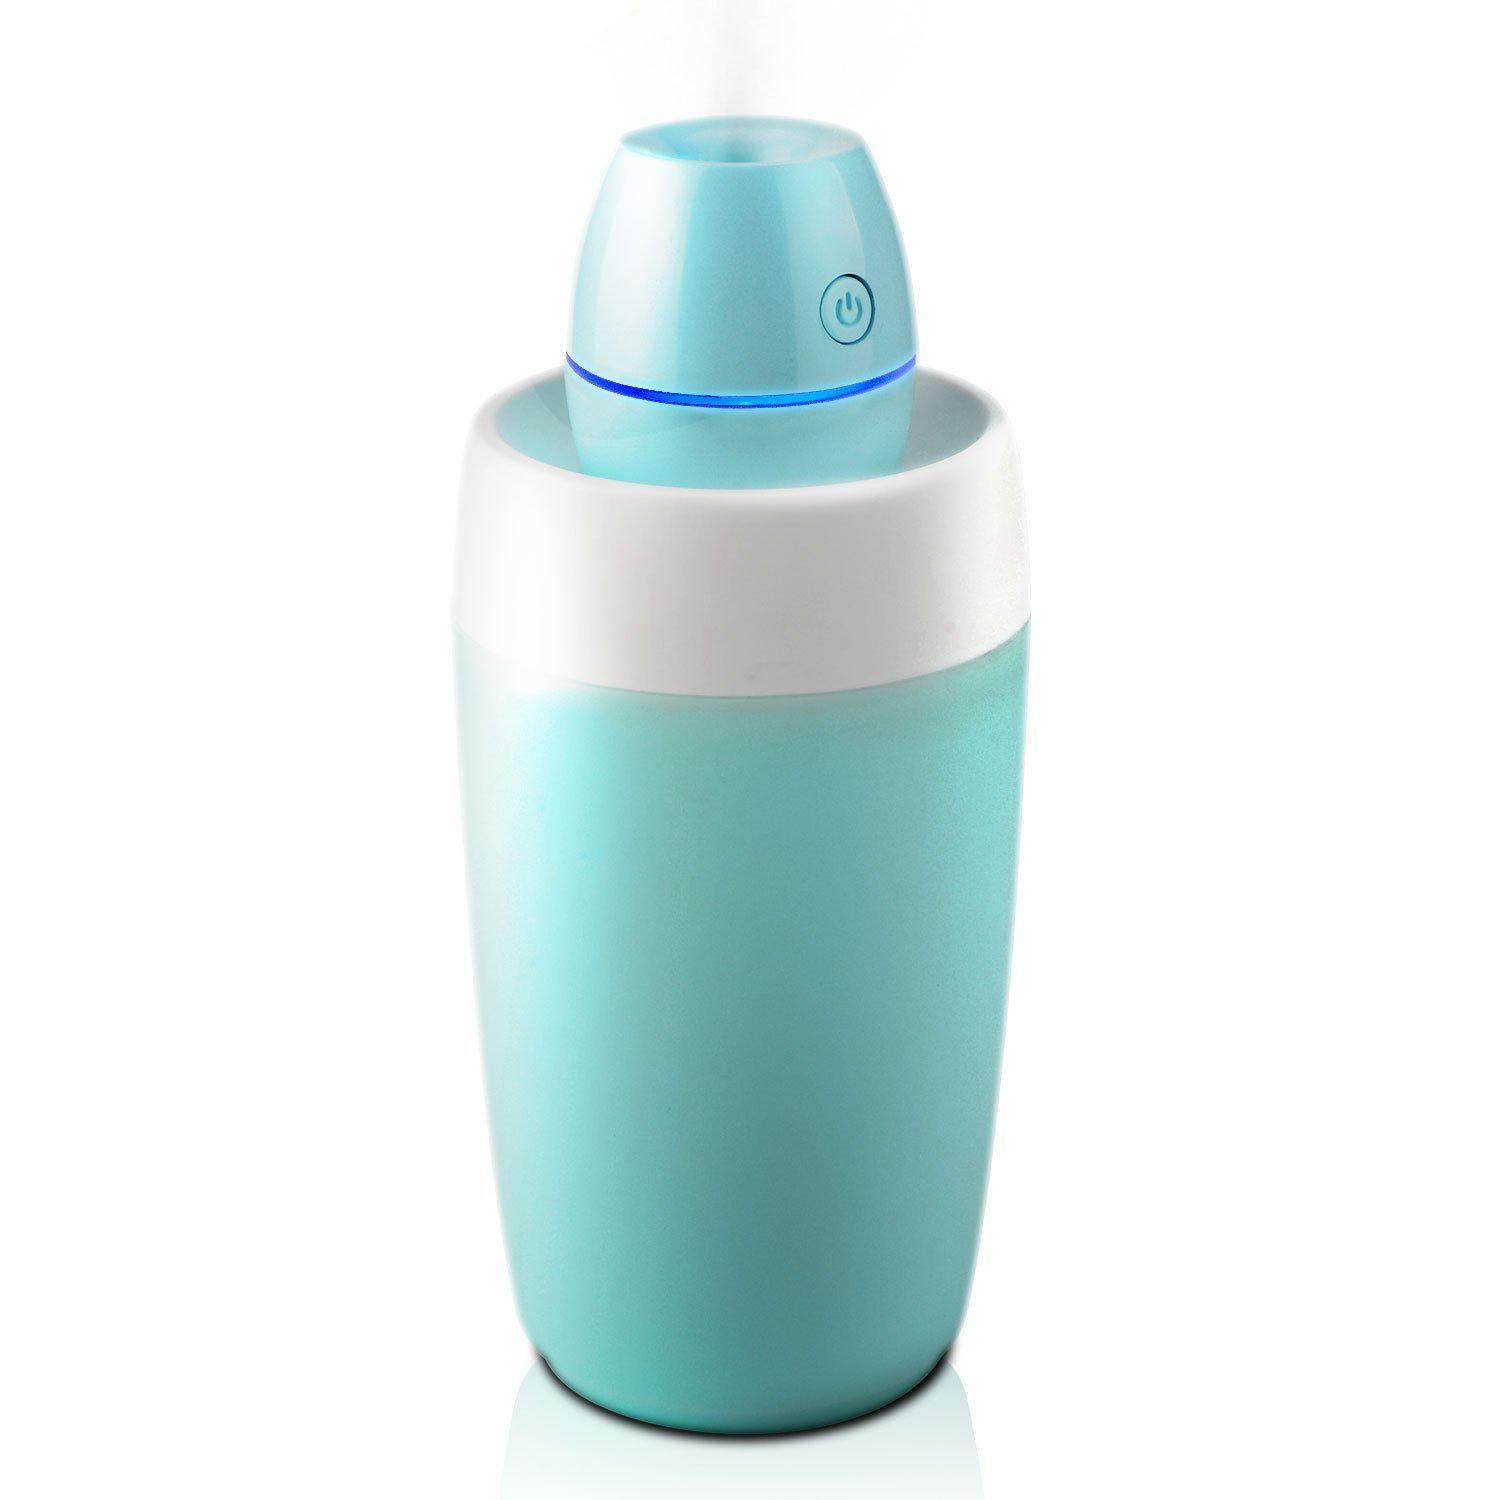 Sale Starrybay Portable Mini Cool Mist Humidifier Ultrasonic Air Essential Oil Diffuser With Led Small Perfect For Travel Home Office Or Car Humidifiers With Water Bottle Intl Starrybay Original